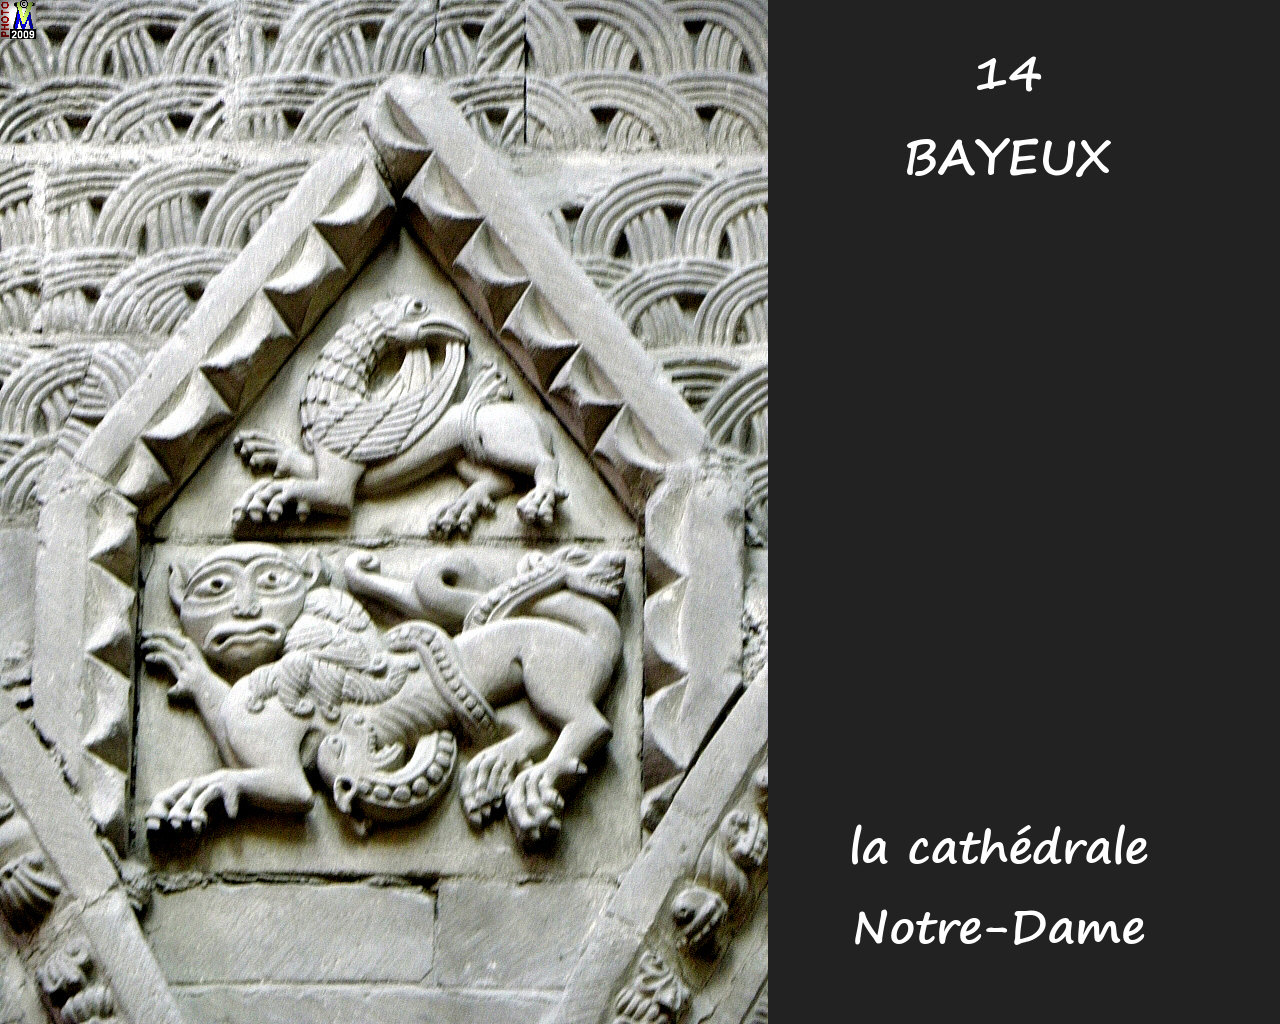 14BAYEUX_cathedrale_220.jpg